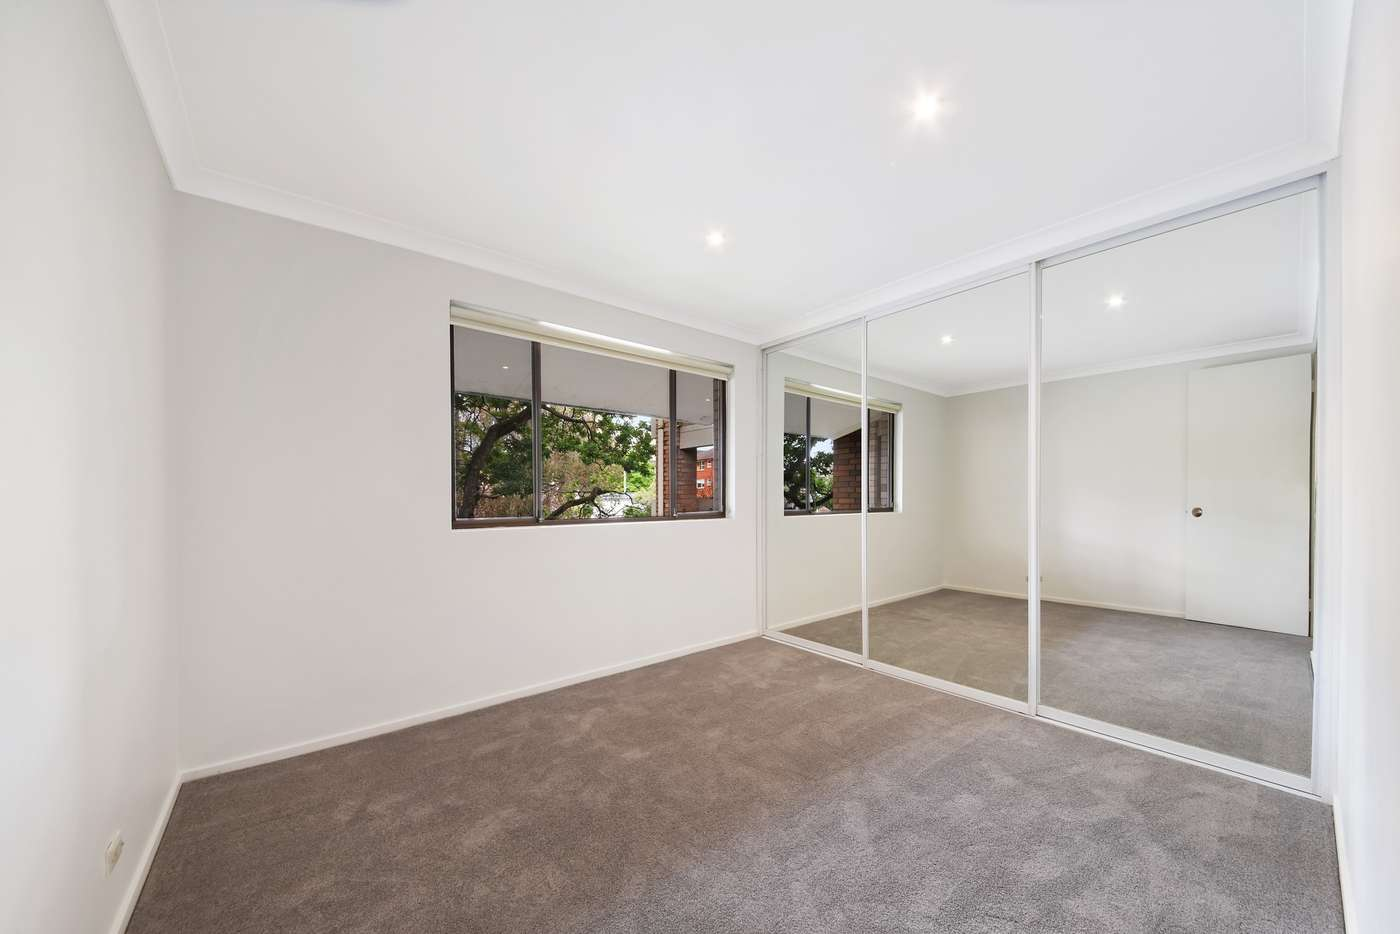 Sixth view of Homely apartment listing, 14/19 Selwyn Street, Wollstonecraft NSW 2065